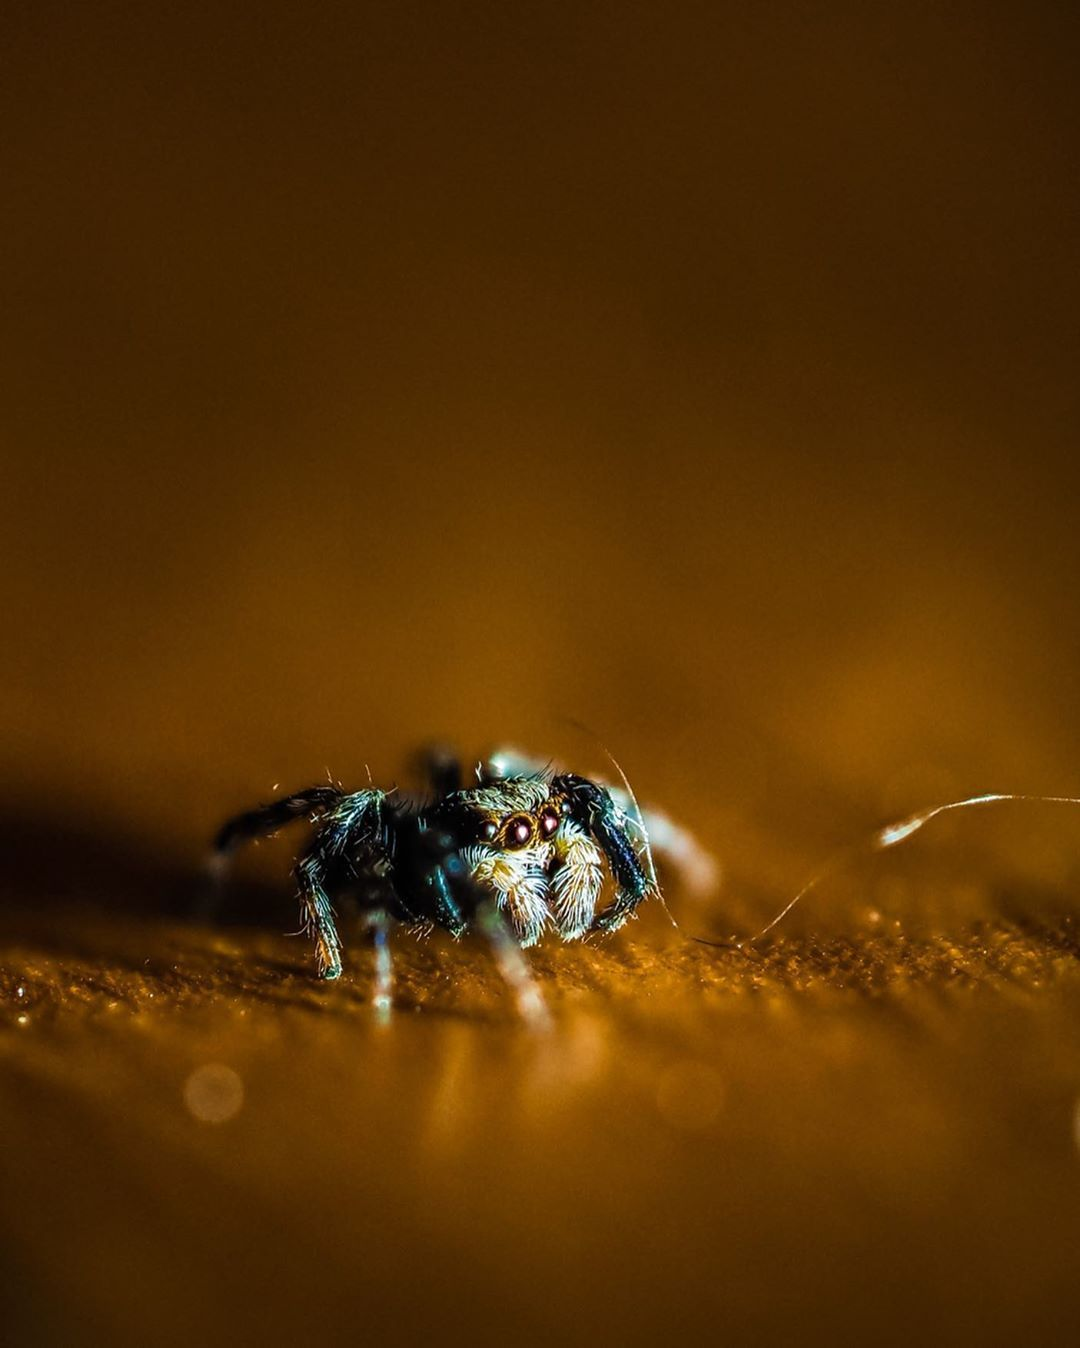 Cheers to @portrait_per_day on Instagram who captured this furry subject 🕷️ #LumeCube #LitByLume #spider #macrophotography #photography #lighting